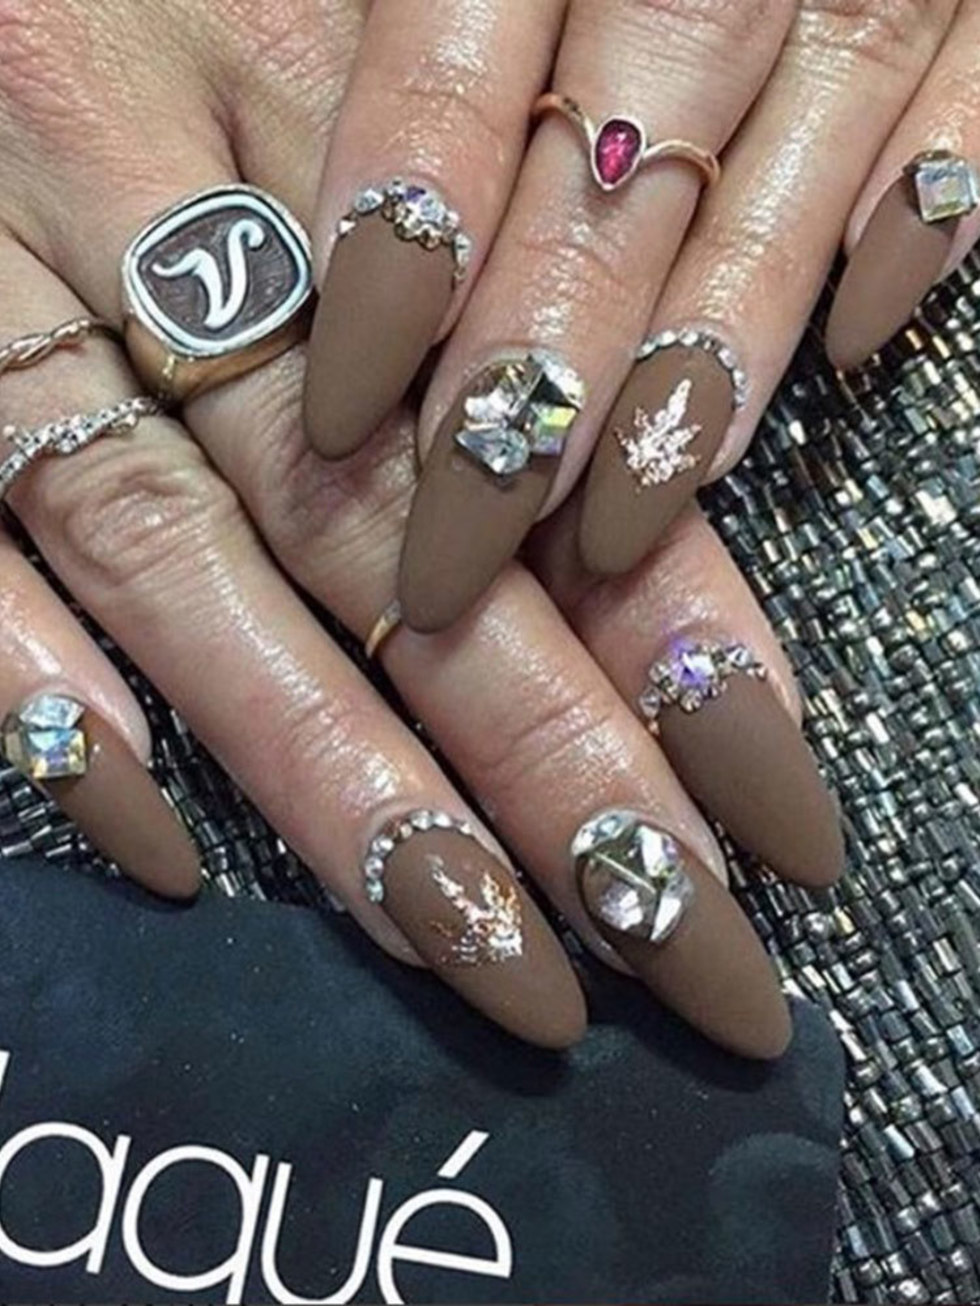 Nail art designs the best celebrity nail art for all your nail art designs the best celebrity nail art for all your manicure inspiration prinsesfo Image collections